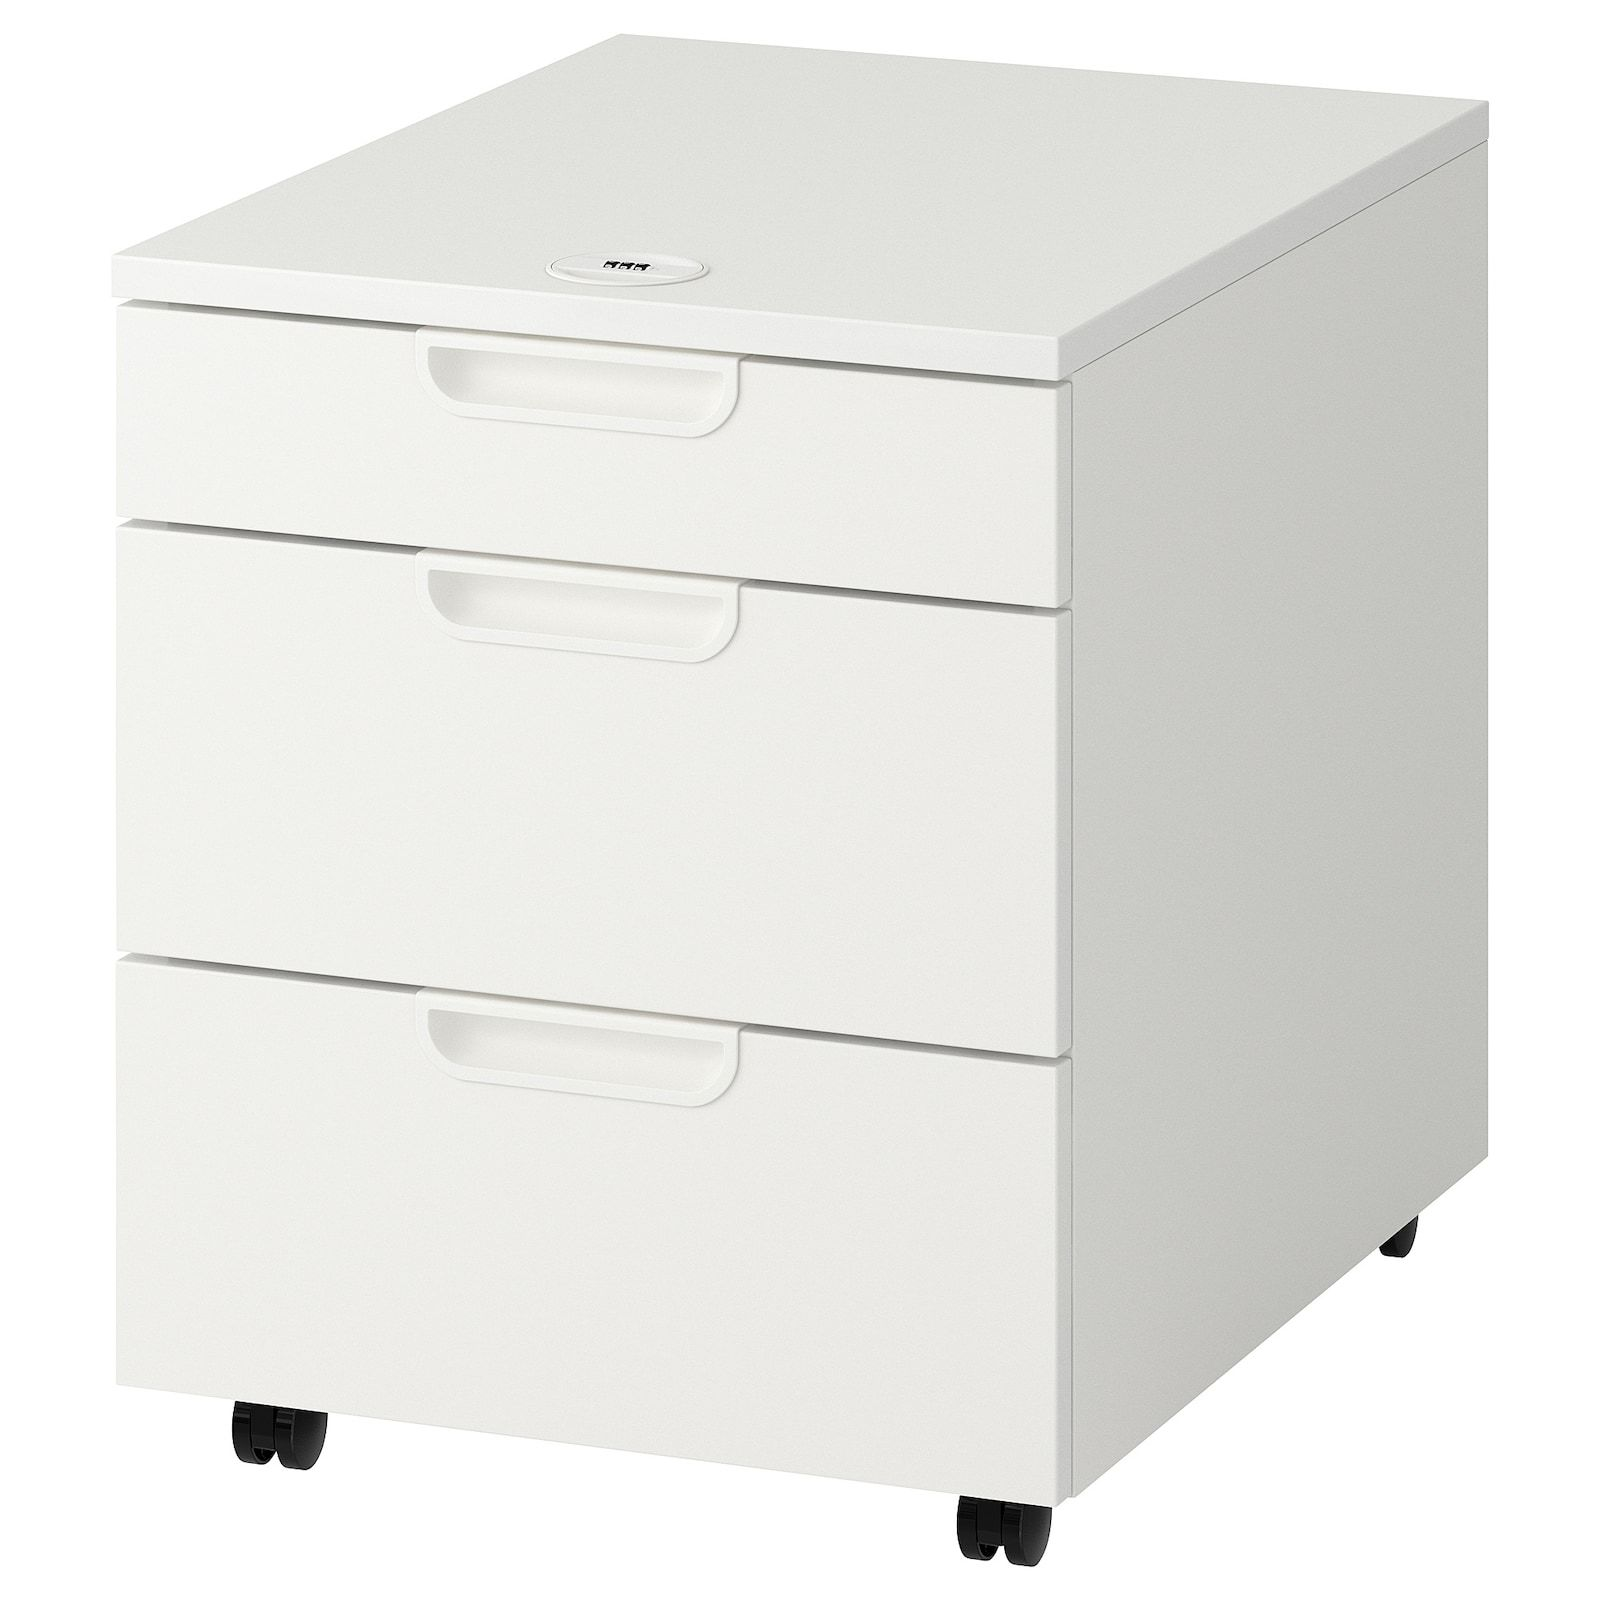 Galant White Drawer Unit On Castors 45x55 Cm Ikea In 2020 Drawer Unit Ikea Drawers